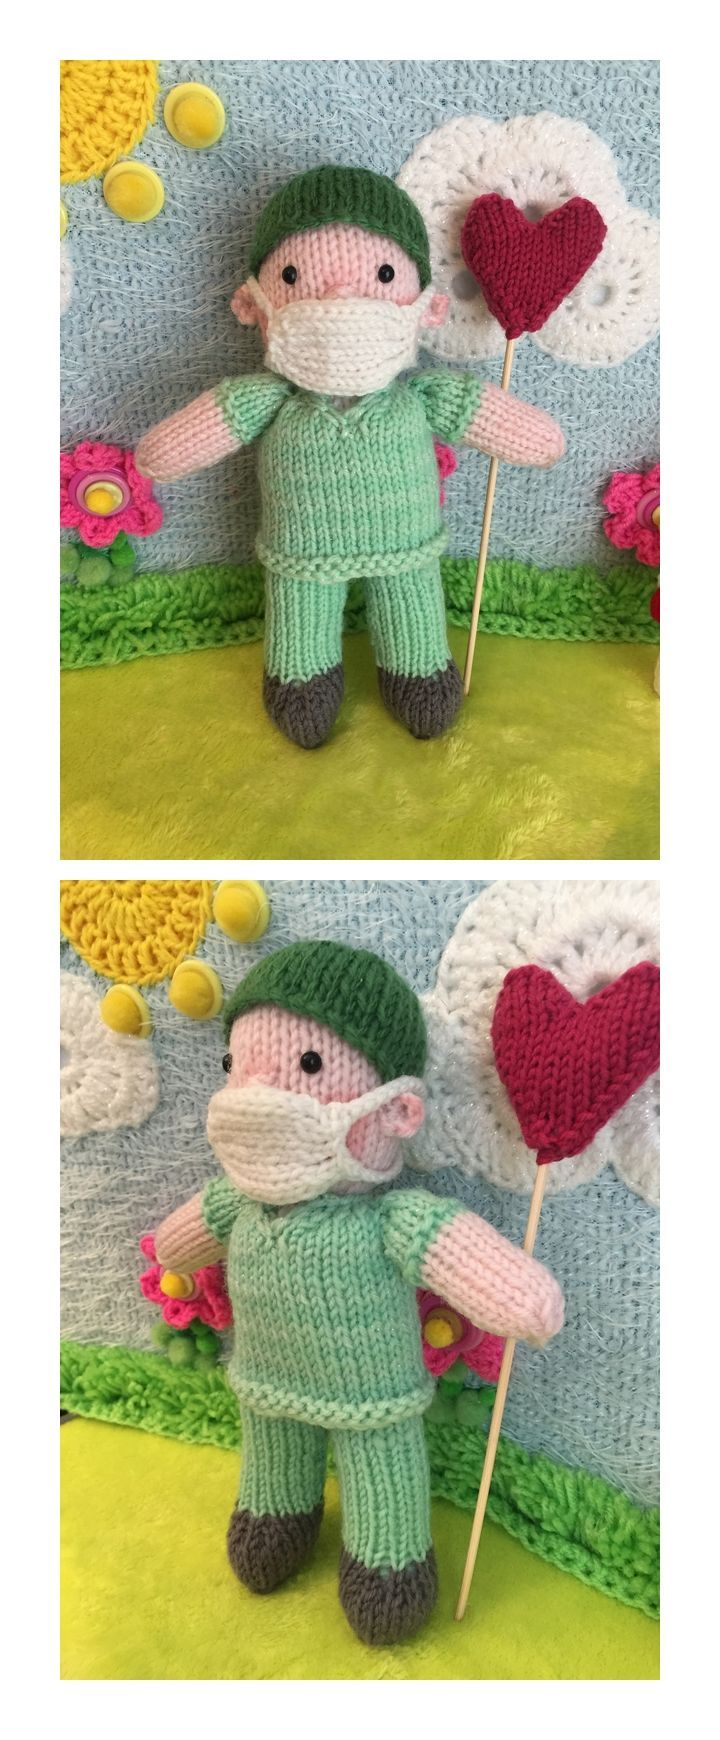 Doctor Dolly Free Knitting Pattern  #doctor #dolly #knitting #dolls #freepatterns #knit #toys #knittingpatterns #freeknittingpatterns